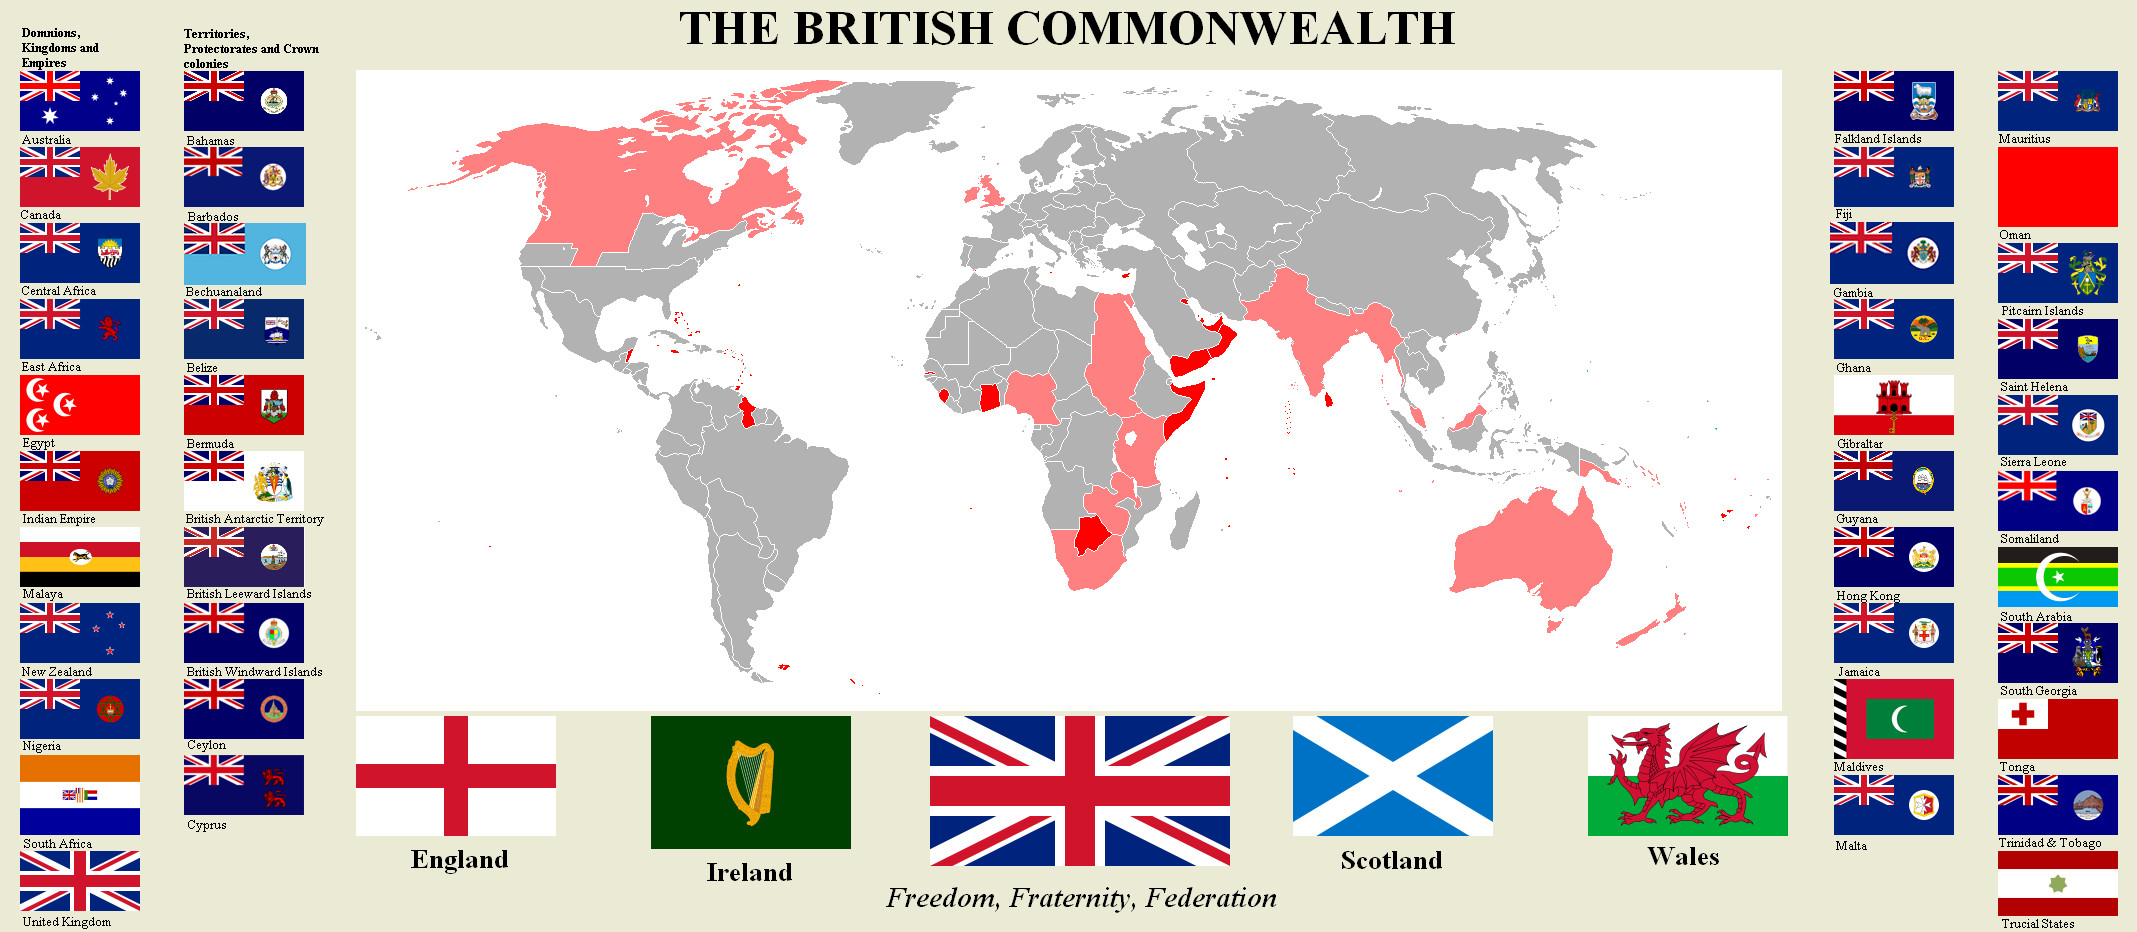 british empire to commonwealth ue pol 110 ha democracy in troubled times libguides at. Black Bedroom Furniture Sets. Home Design Ideas